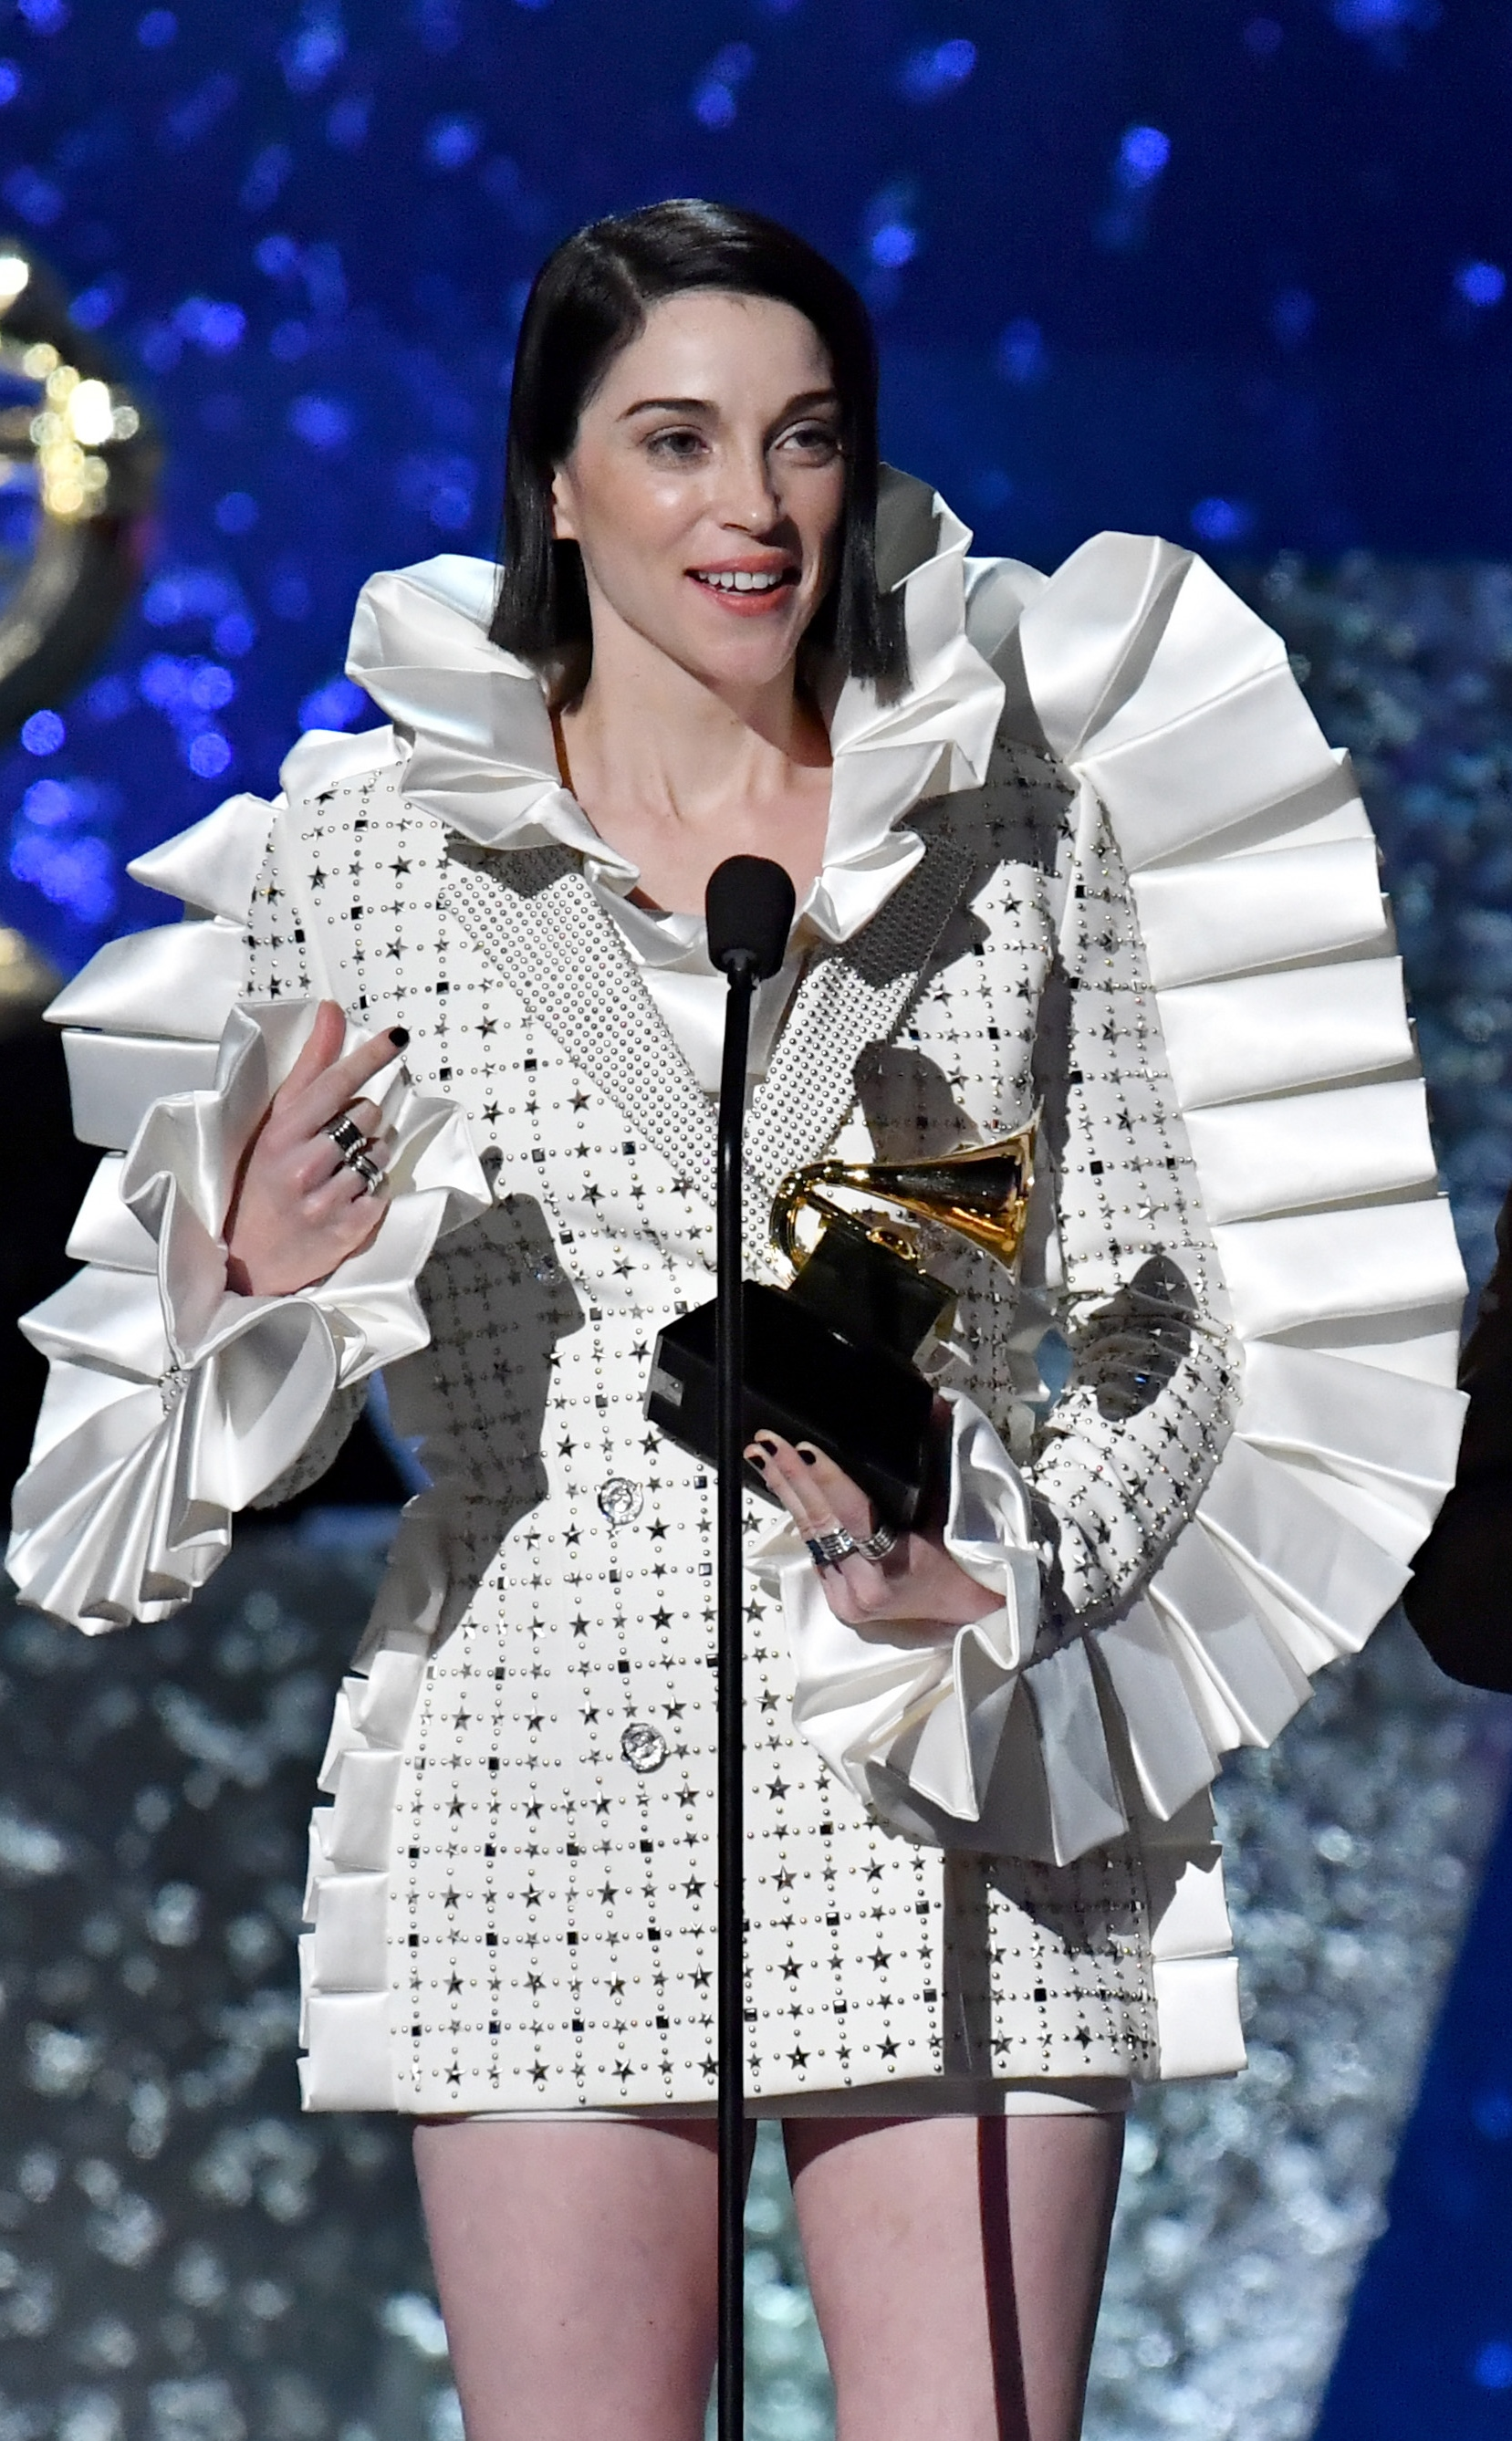 ST. VINCENT - 61st Annual GRAMMY Awards - Premiere Ceremony